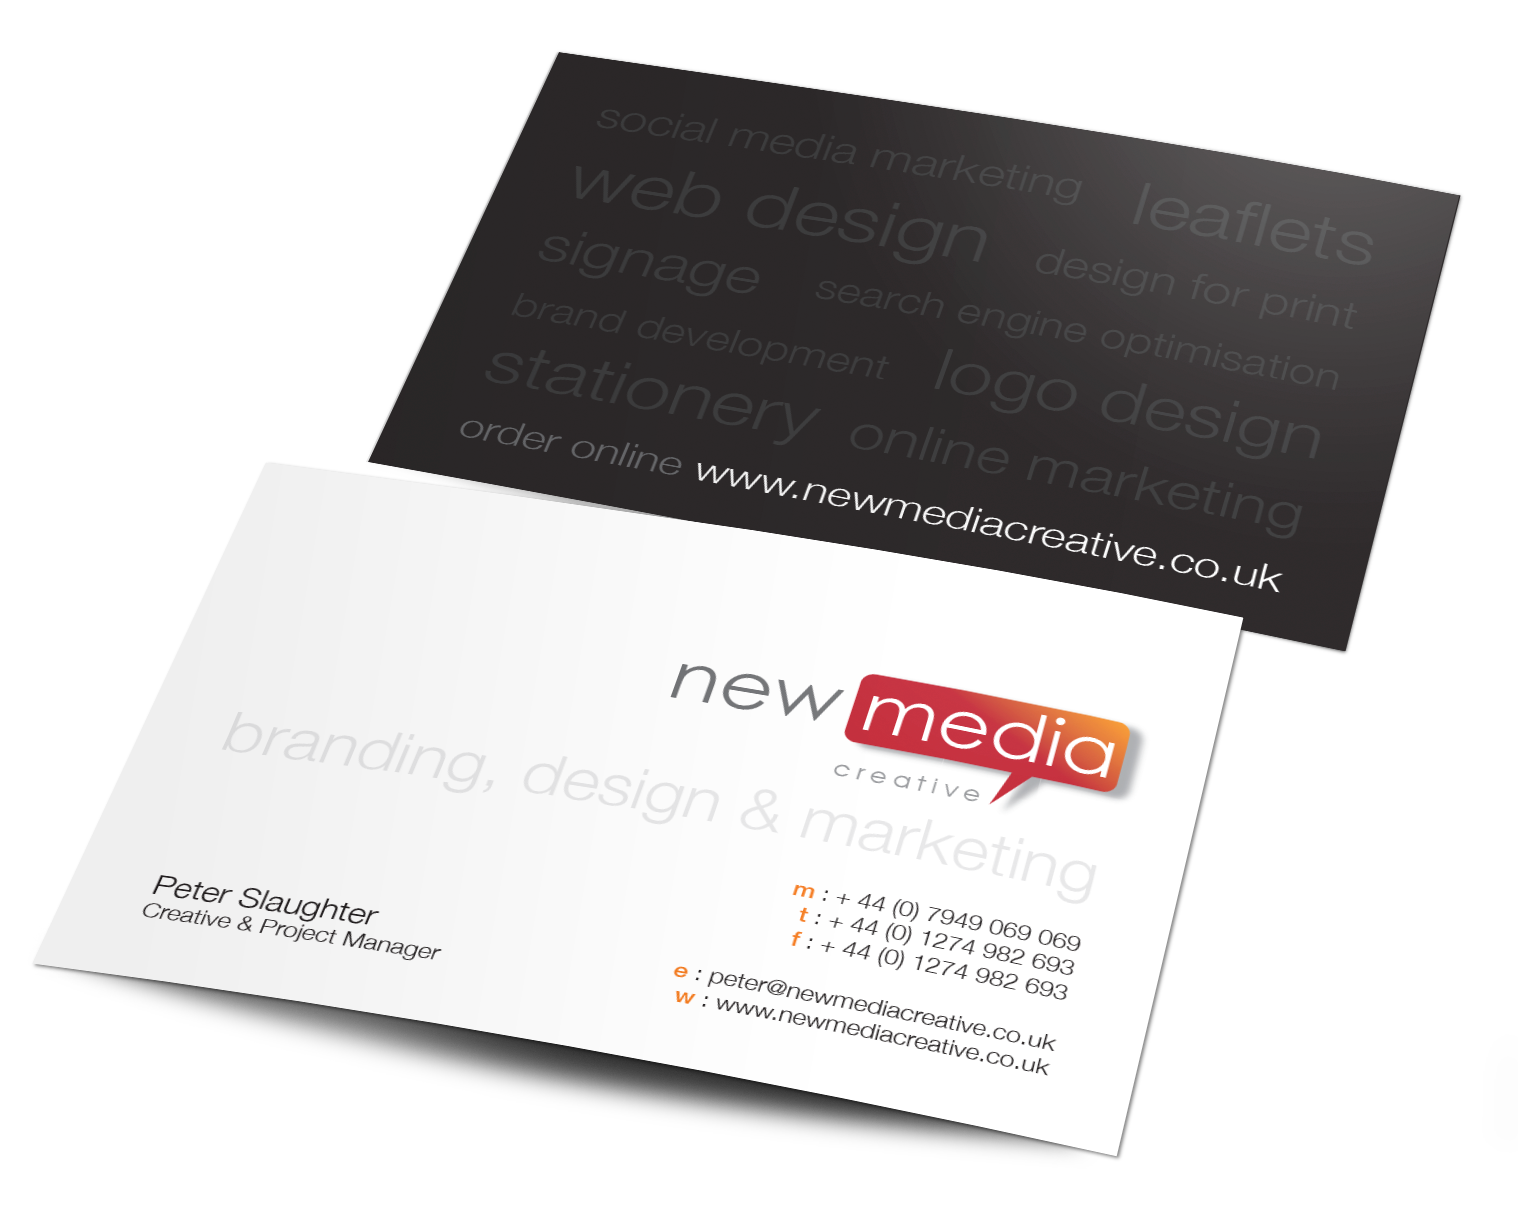 Free business cards online business card tips businesscardsonline free business cards online business card tips businesscardsonline reheart Images